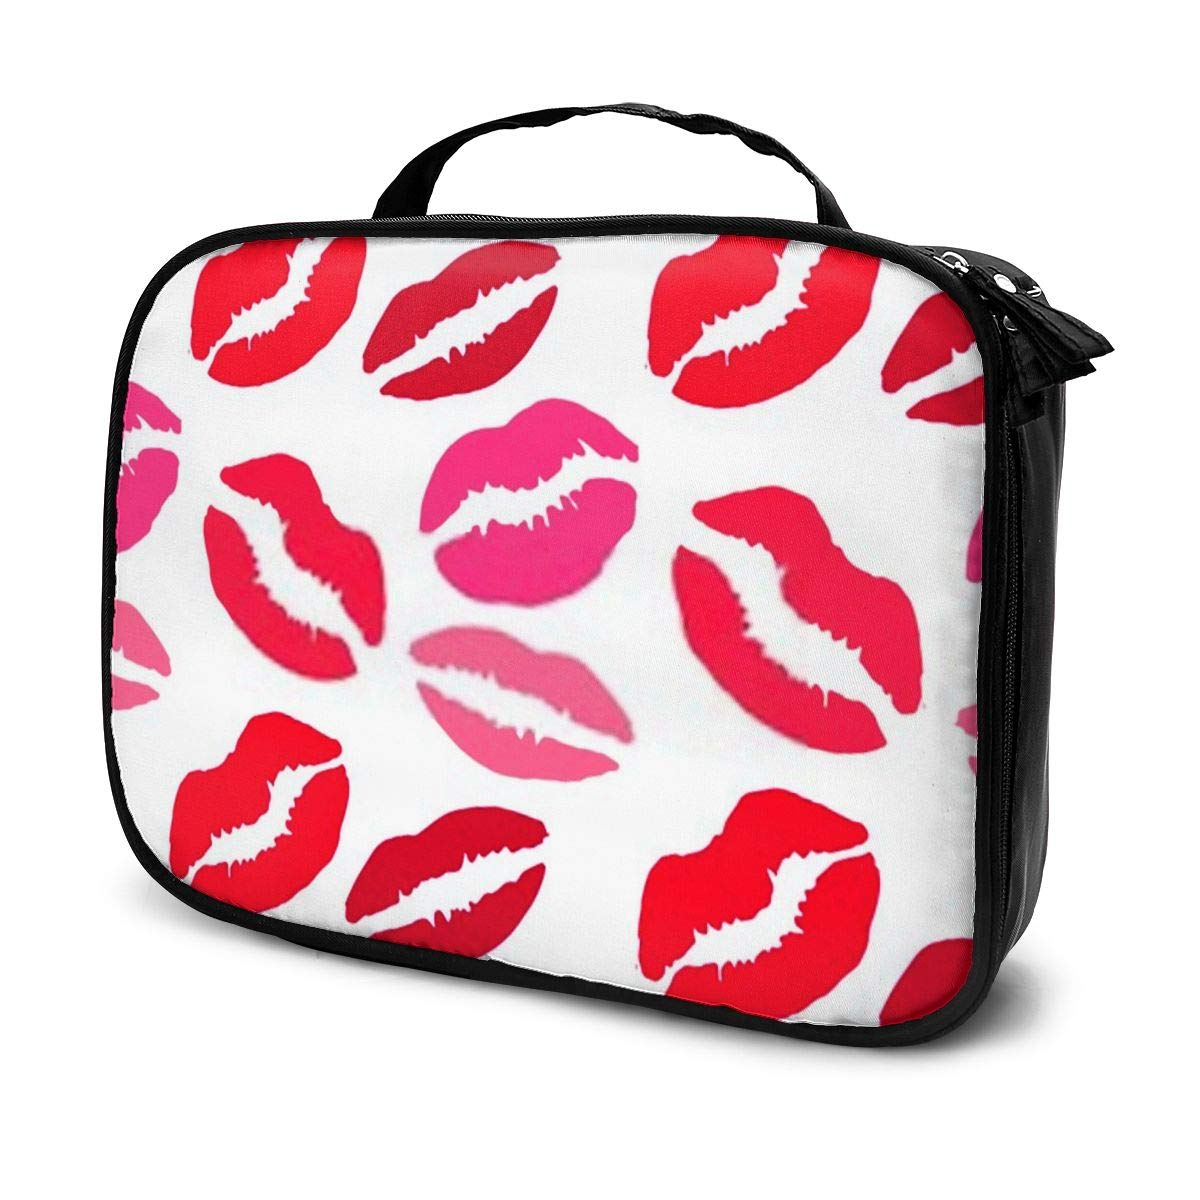 Seamless Pattern With Lips Print Cosmetic Case with Brush Organizer